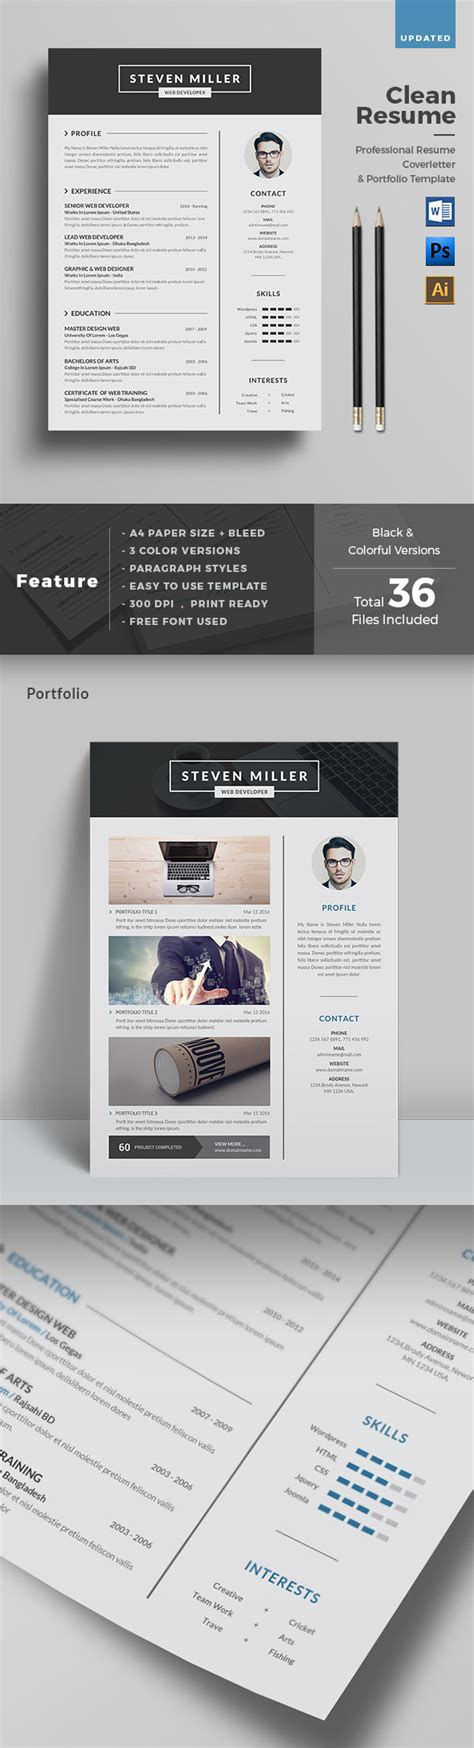 Clean Creative Resume Templates by 25 Creative Resume Templates To Land A New In Style